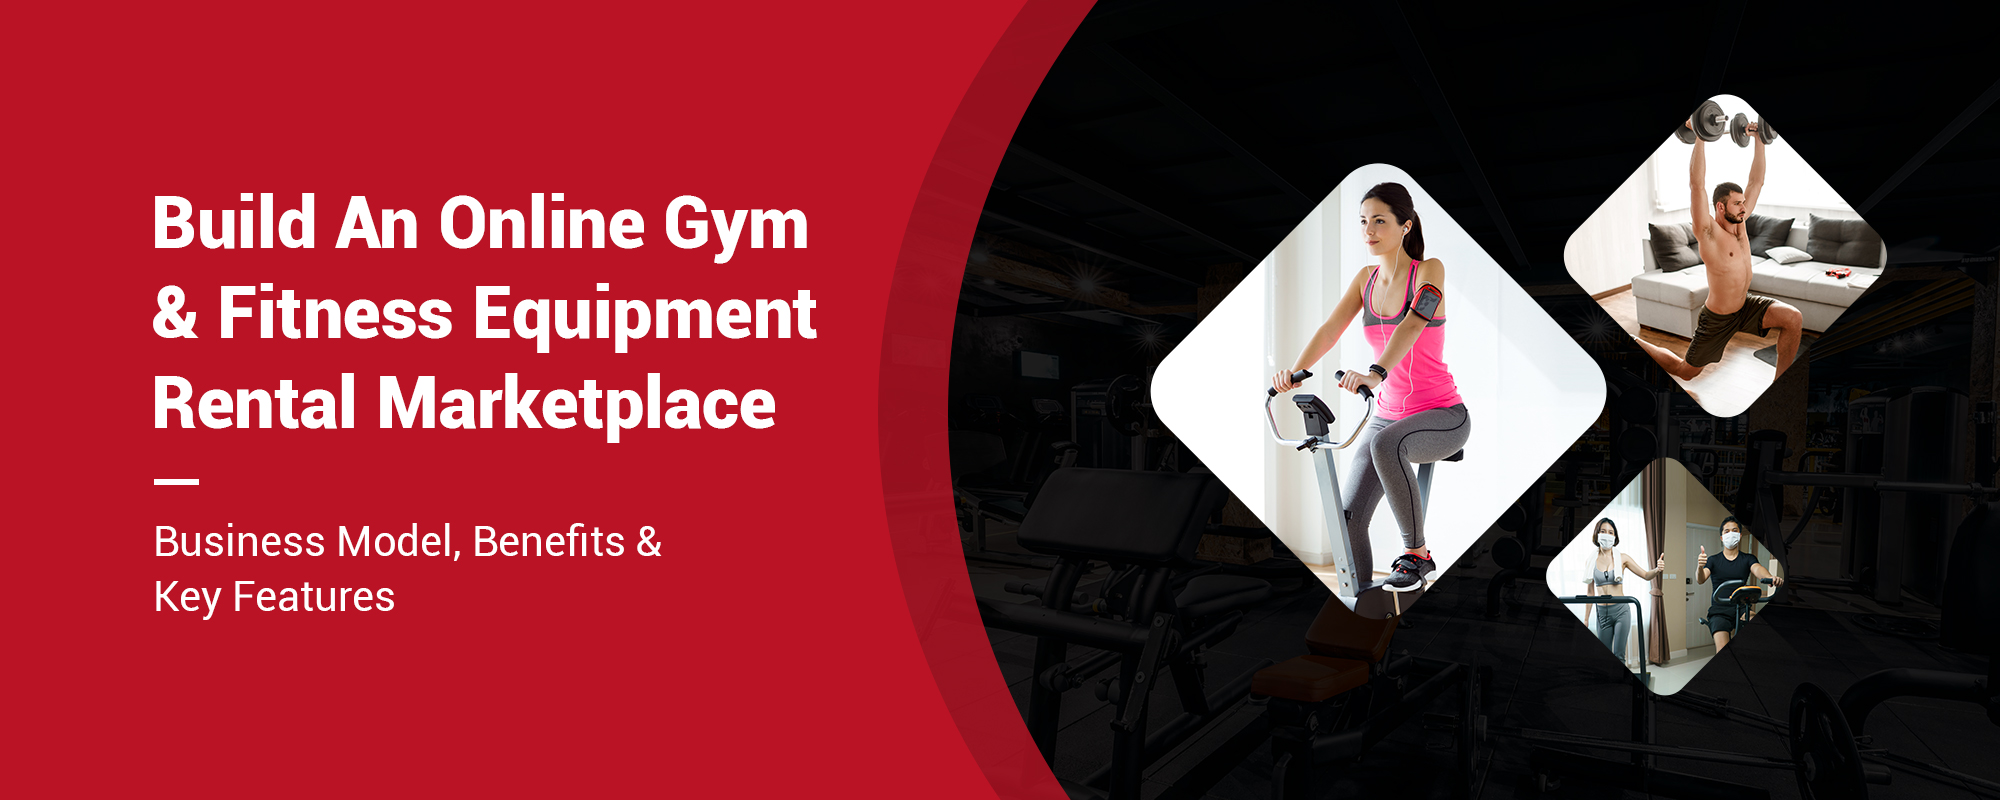 Everything You Need To Know About Starting An Online Gym & Fitness Equipment Rental Marketplace